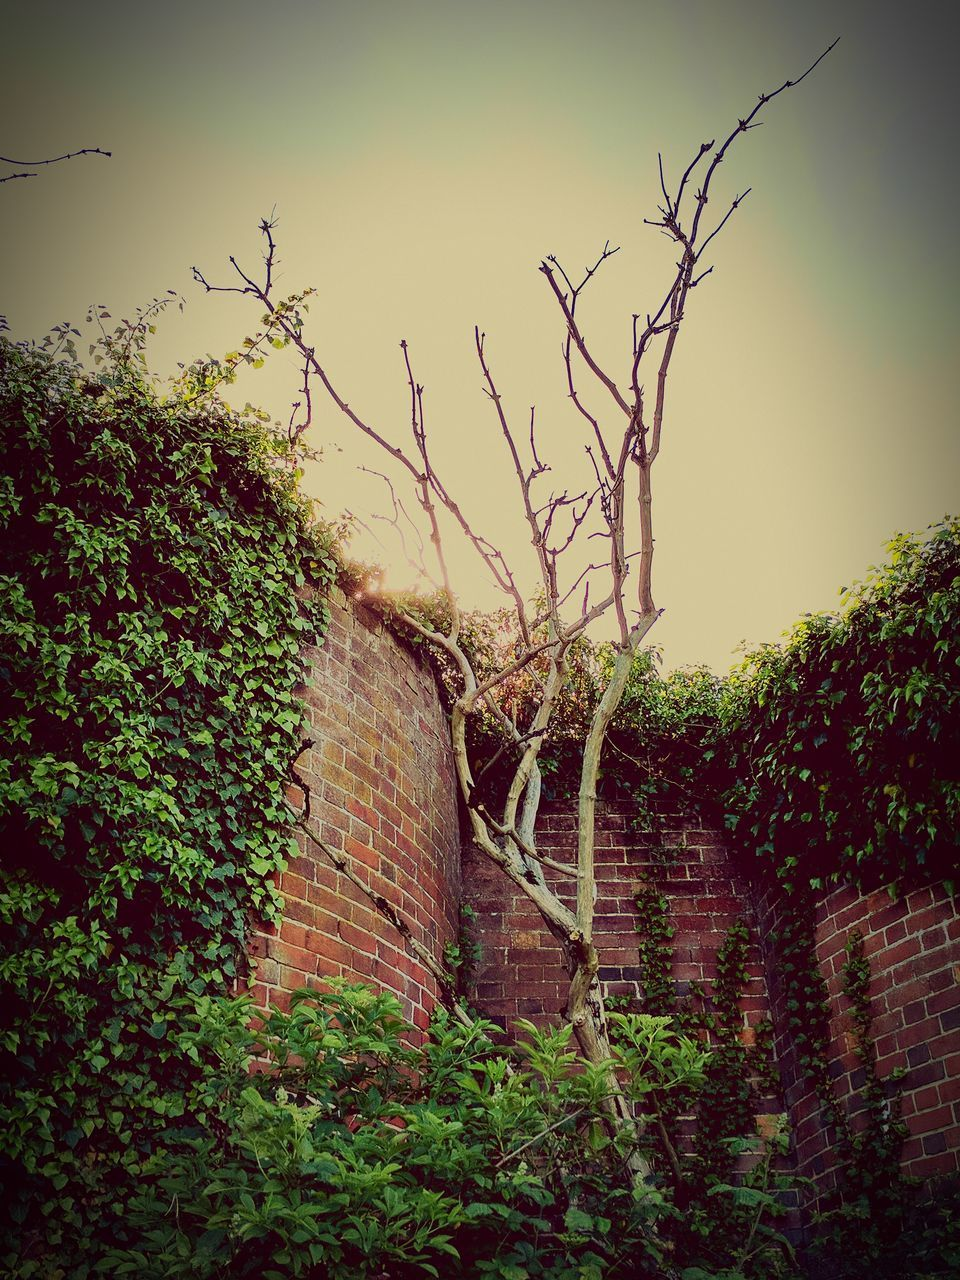 brick wall, tree, no people, outdoors, plant, nature, day, growth, ivy, architecture, built structure, beauty in nature, branch, sky